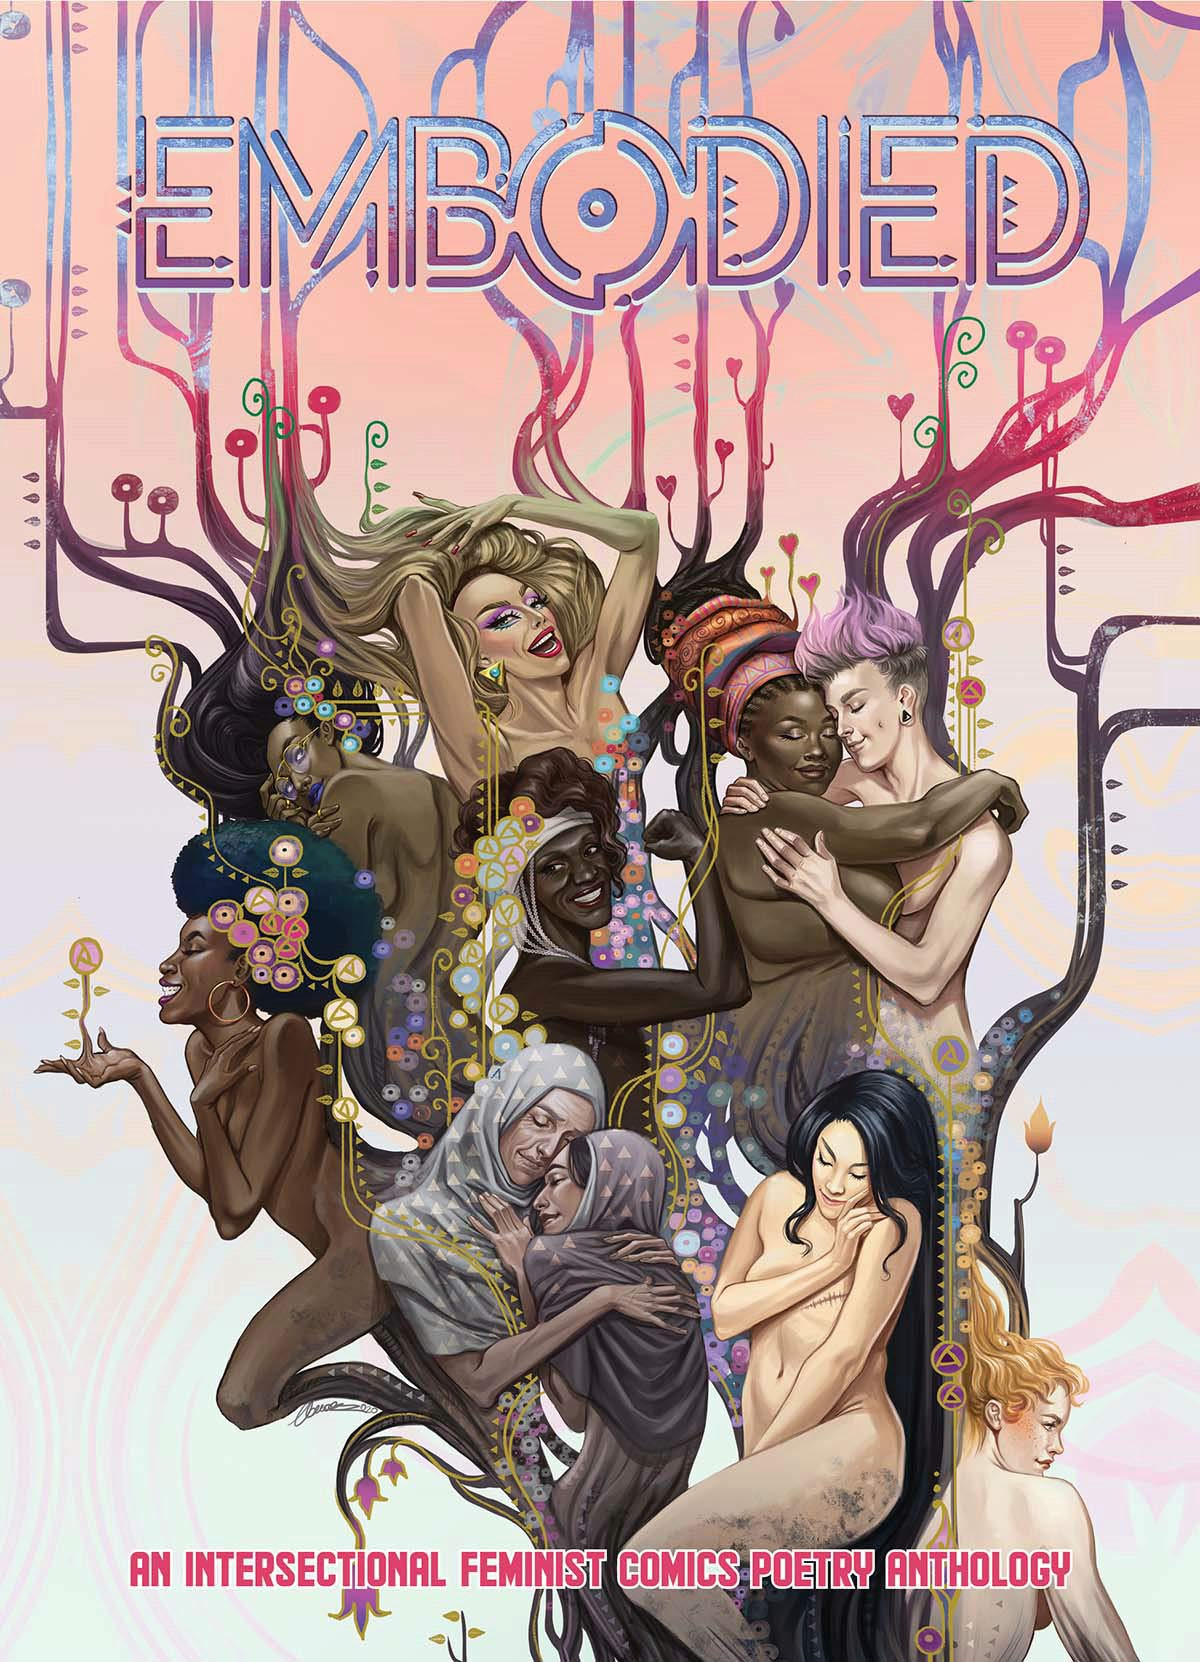 Panel Mania: Embodied: An Intersectional Feminist Comics Poetry Anthology